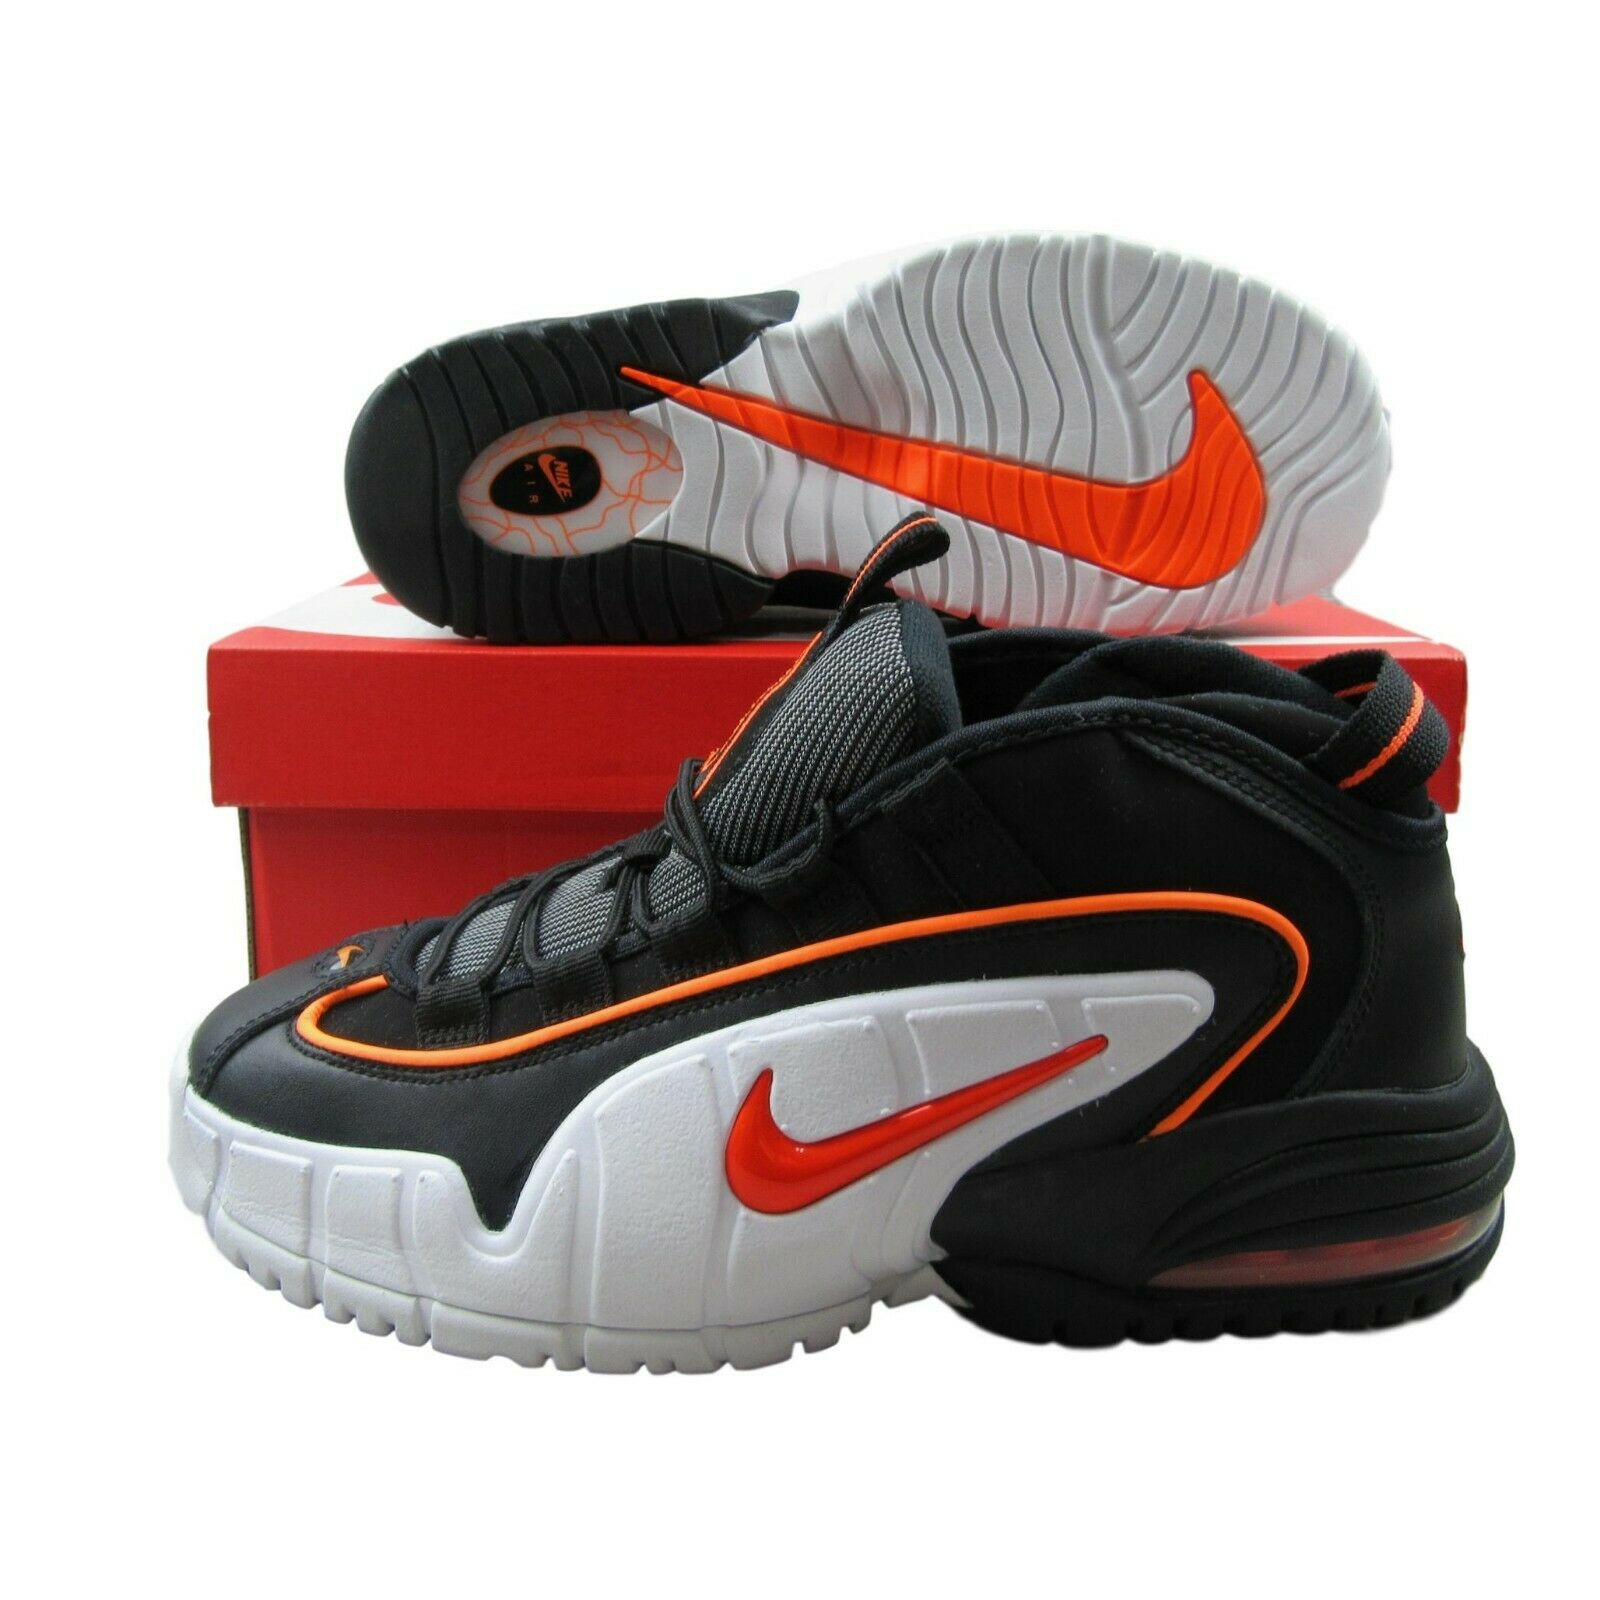 d347ae36e3 Nike Air Max Penny LE GS Size 7Y Basketball Shoes White Orange ...